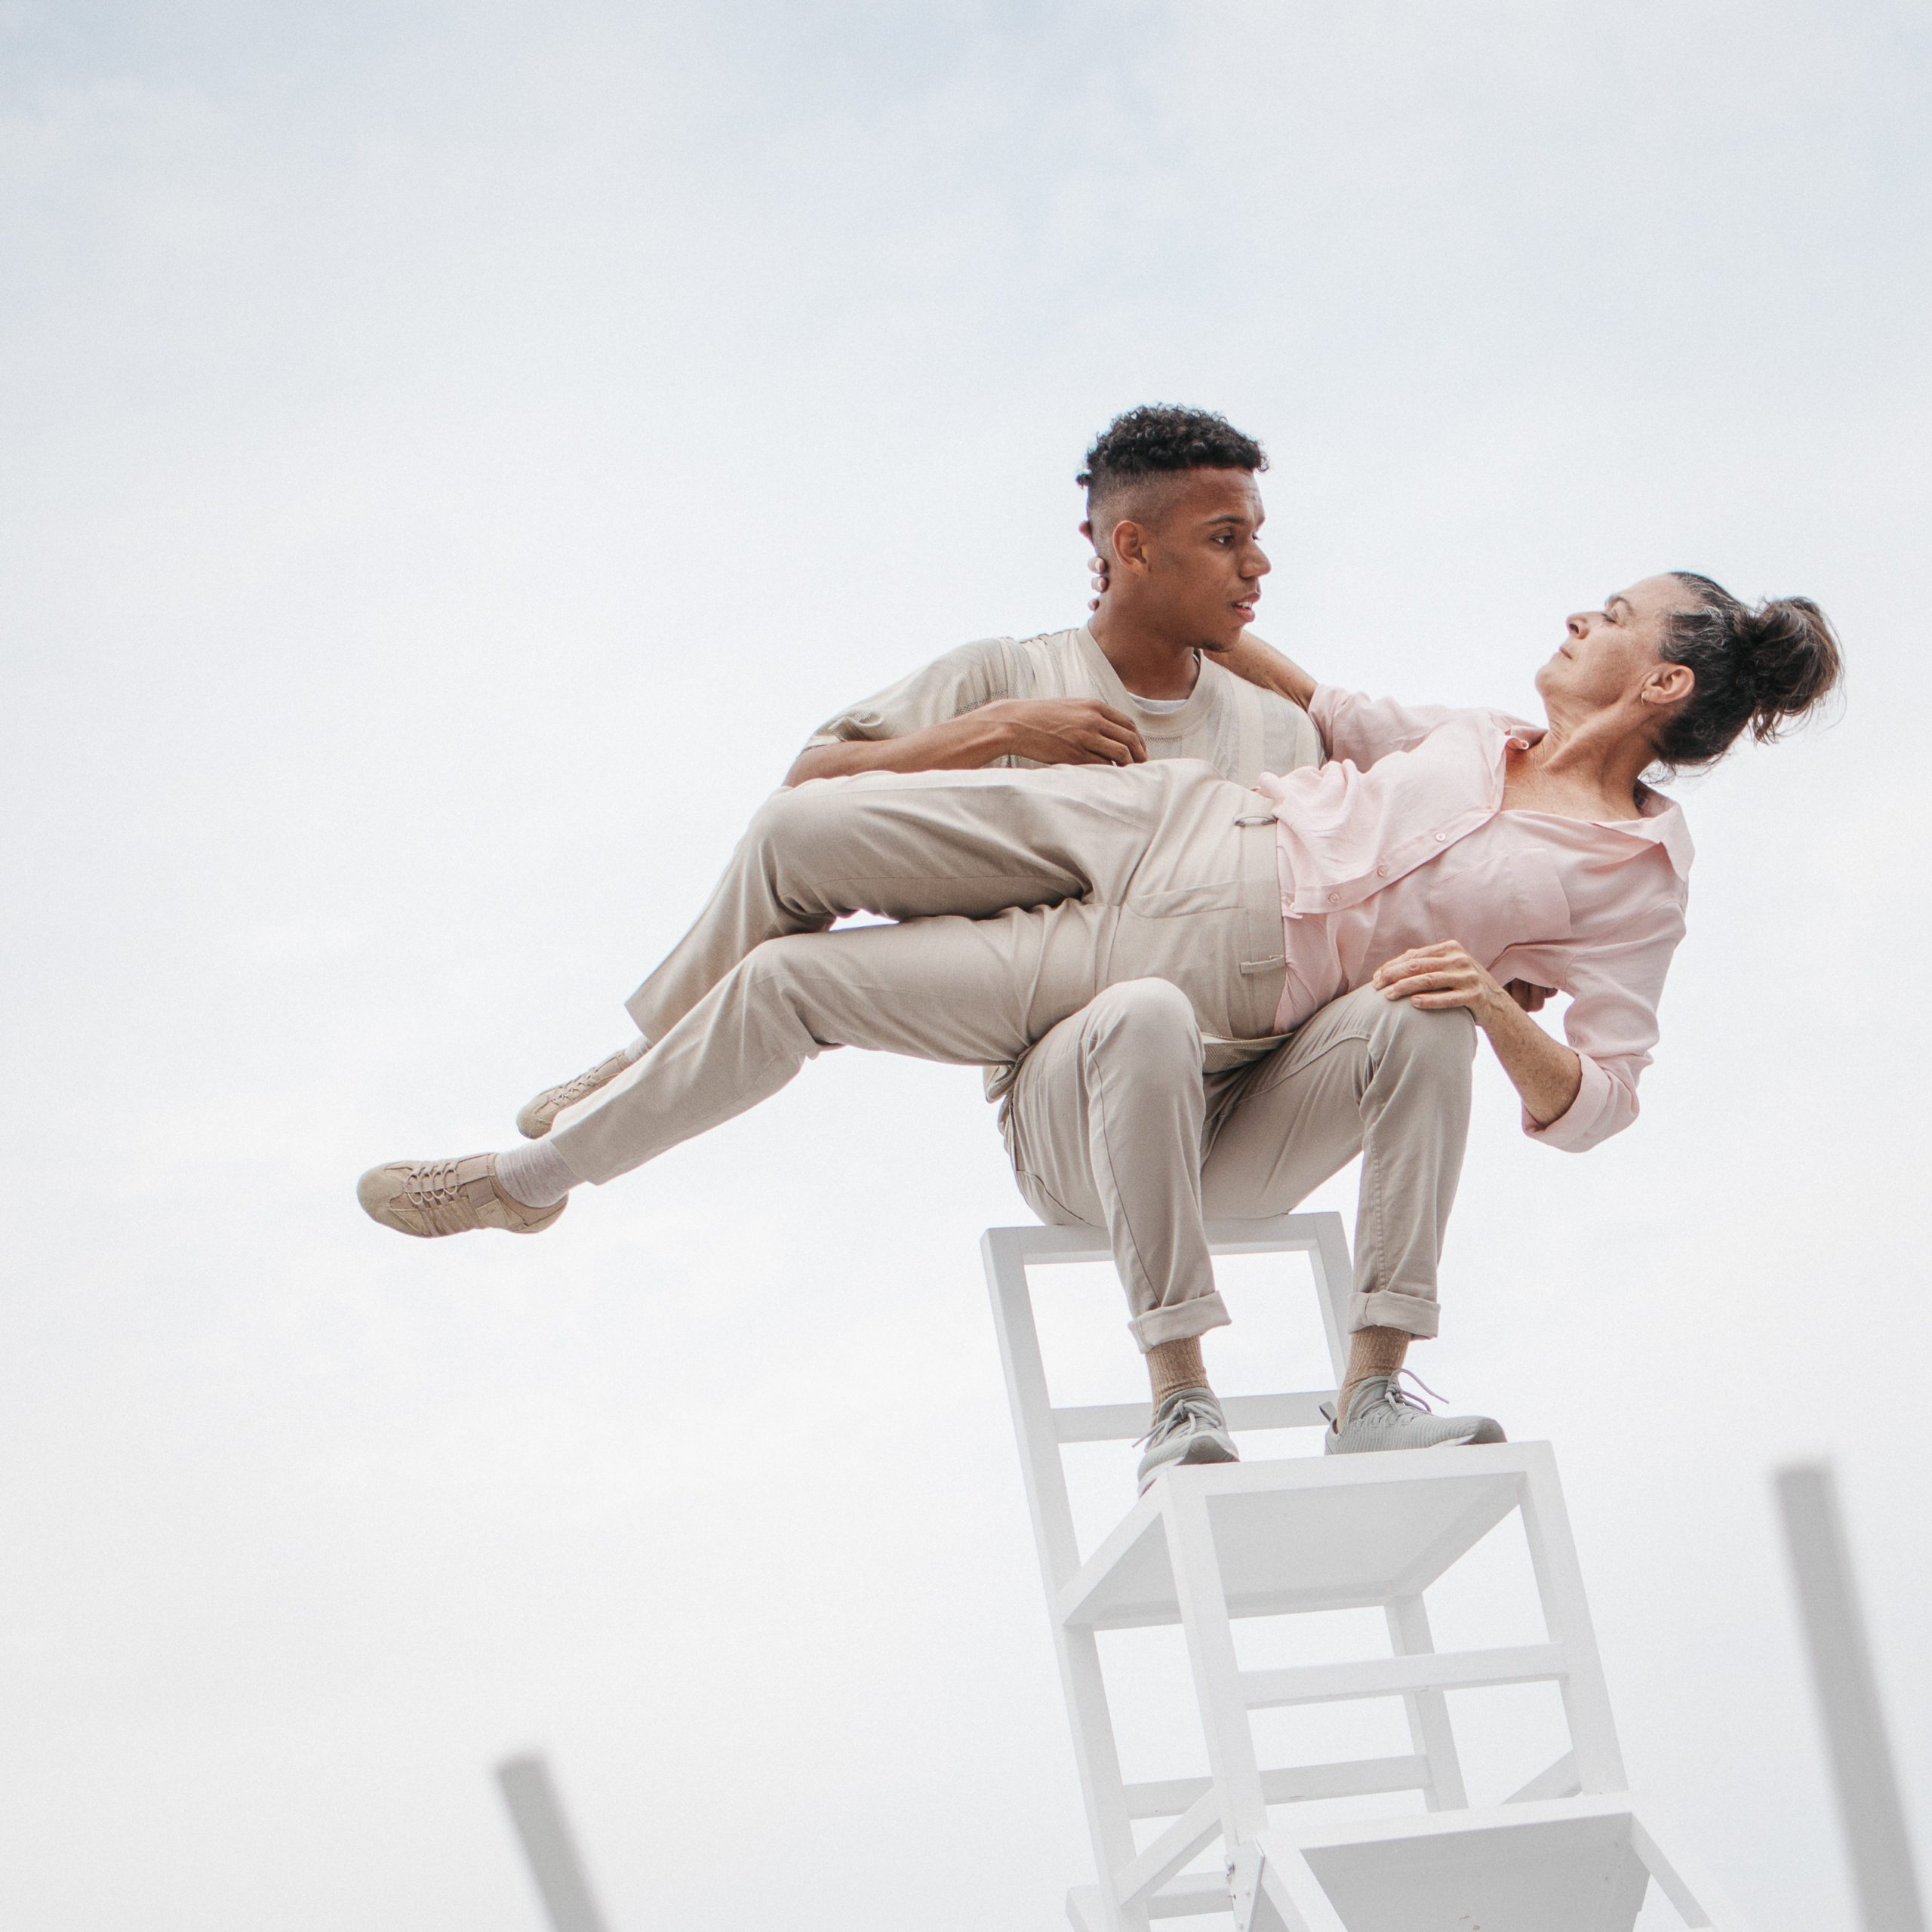 Two performers balance on a stack of chairs holding each other.